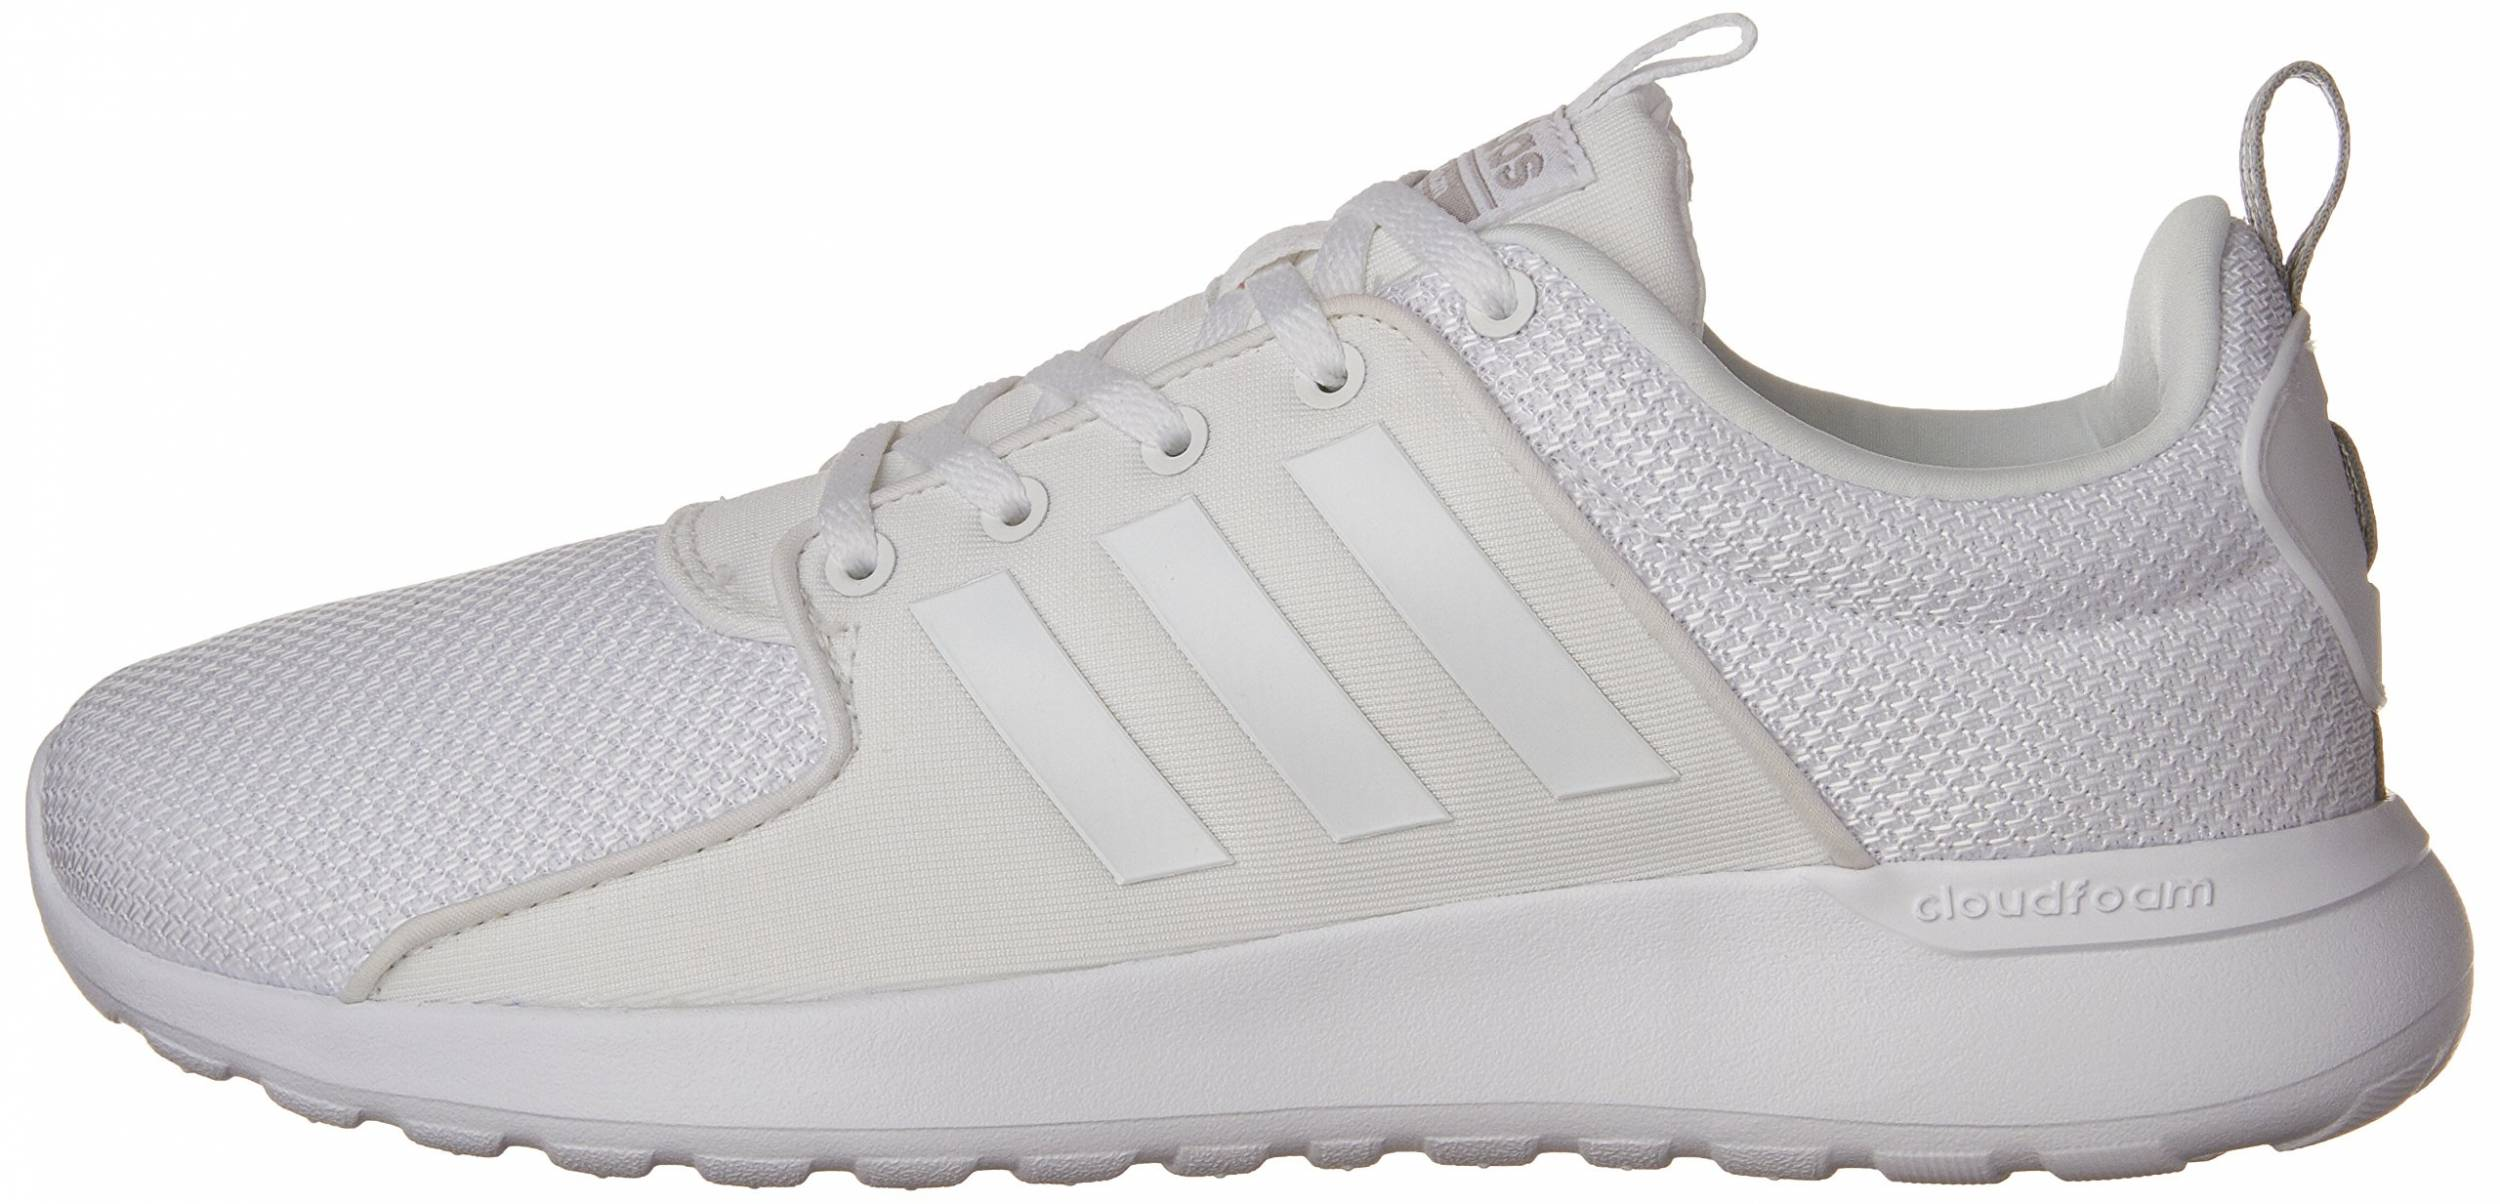 aspecto Sobrevivir Economía  Save 45% on Adidas Cloudfoam Sneakers (27 Models in Stock) | RunRepeat